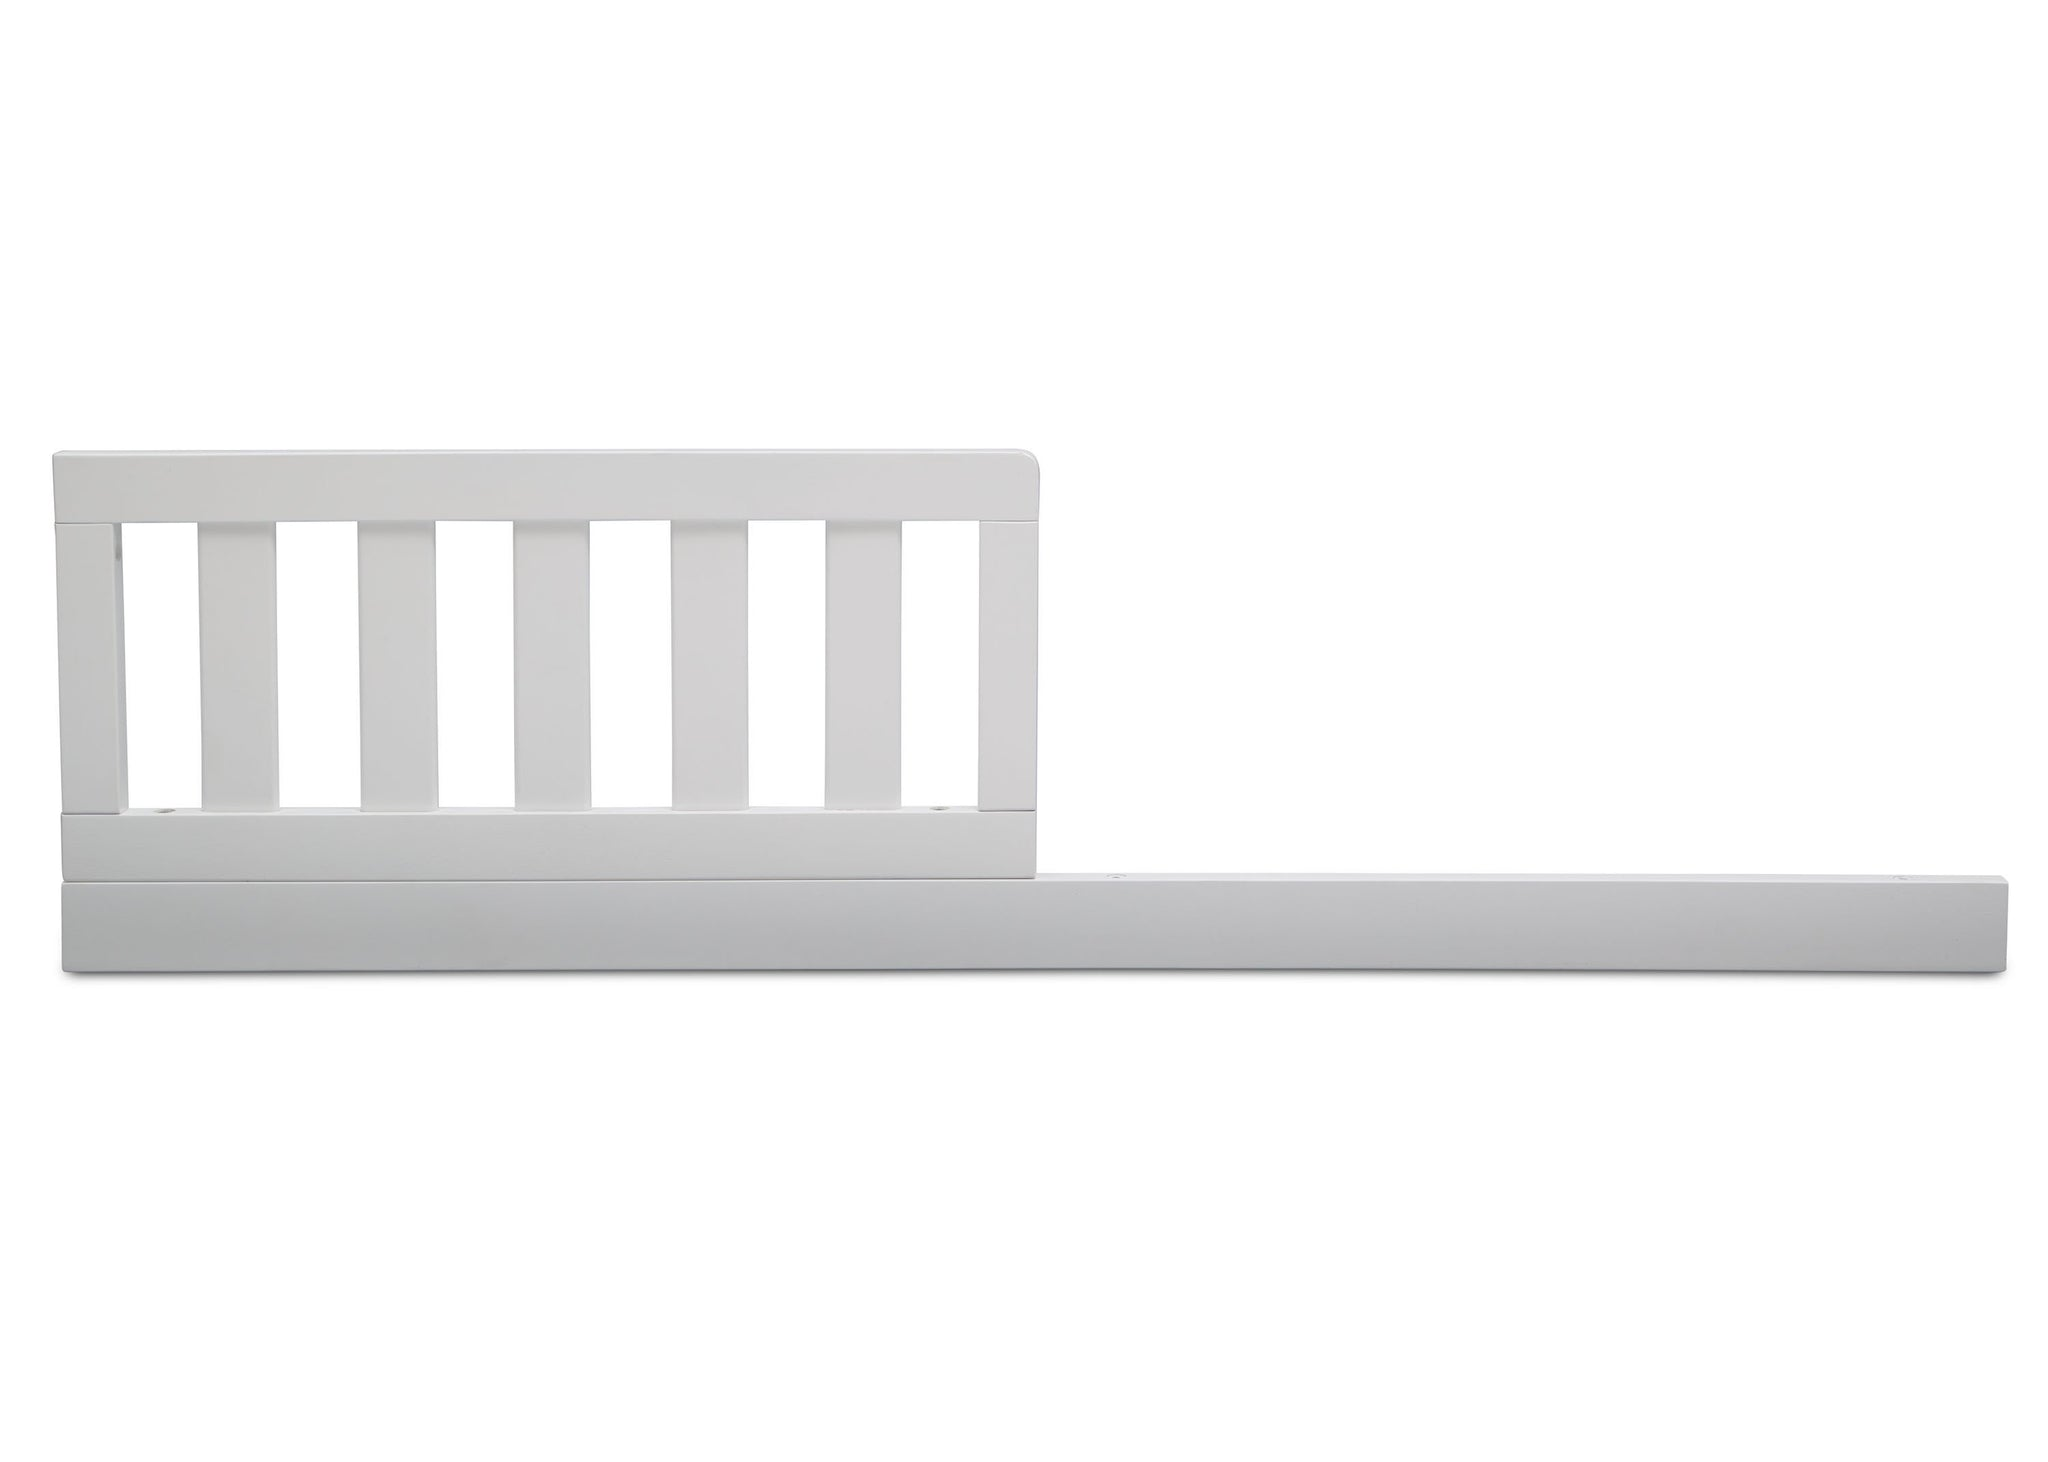 Serta Daybed/Toddler Guardrail Kit (707726) Bianca (130) Front b1b